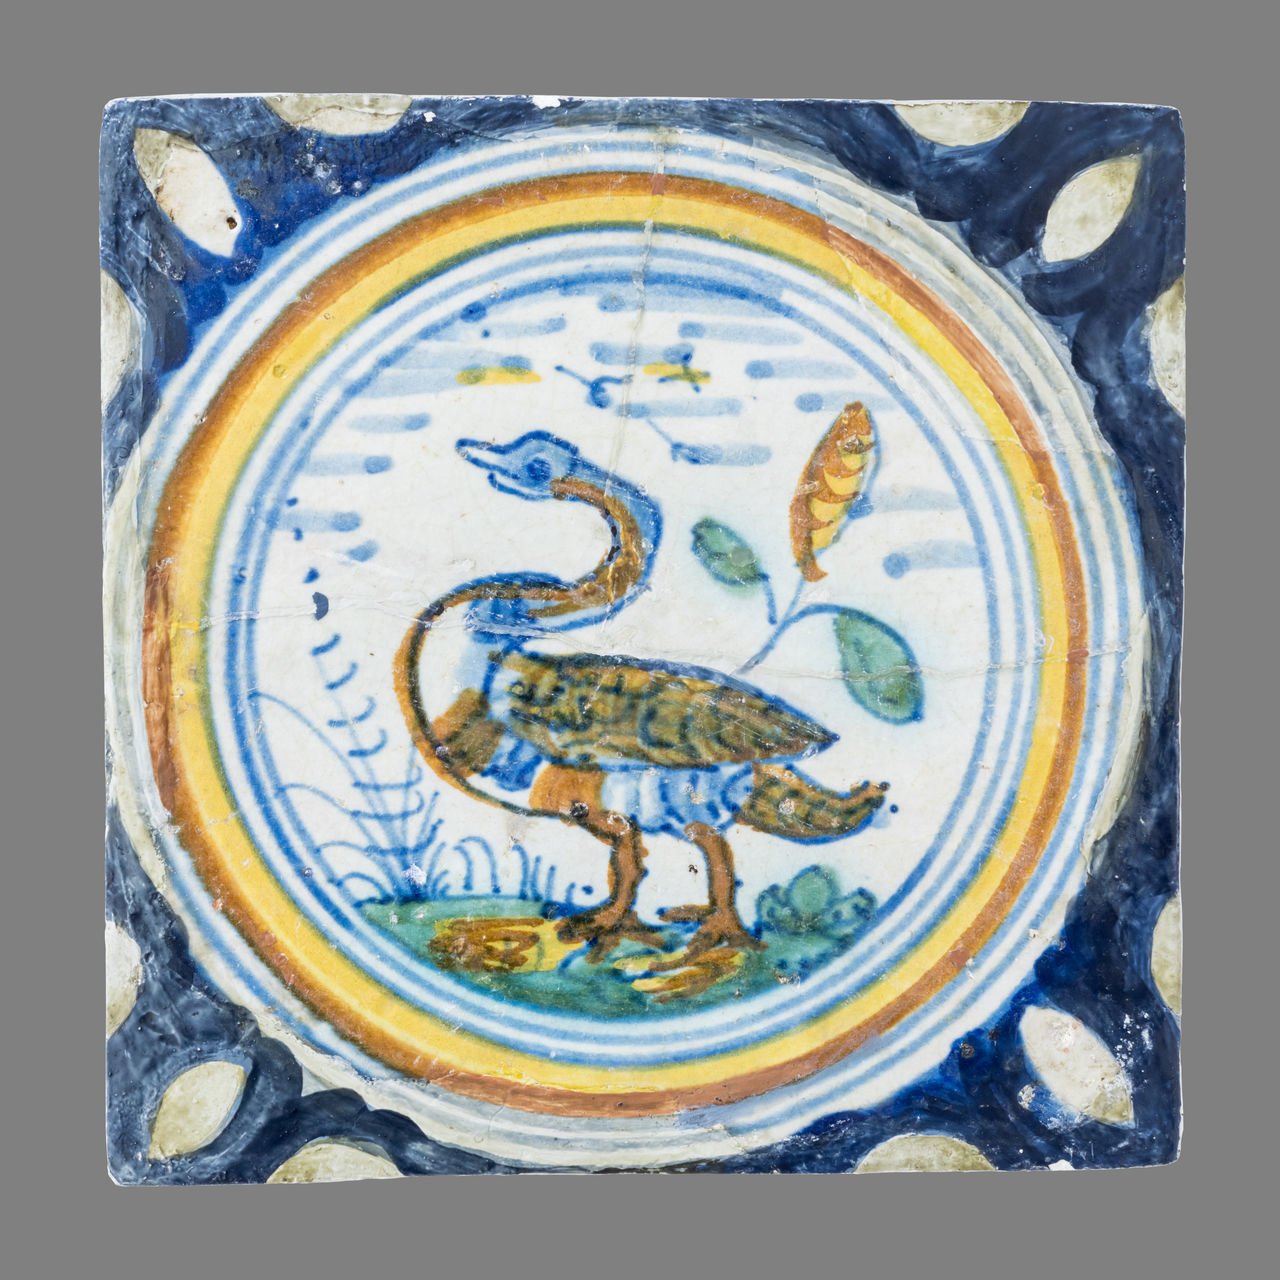 16th Century 17th Century 18th Century Bird Blue Ceramics Close-up Day Netherlands No People Tile Watercolor Painting White Background